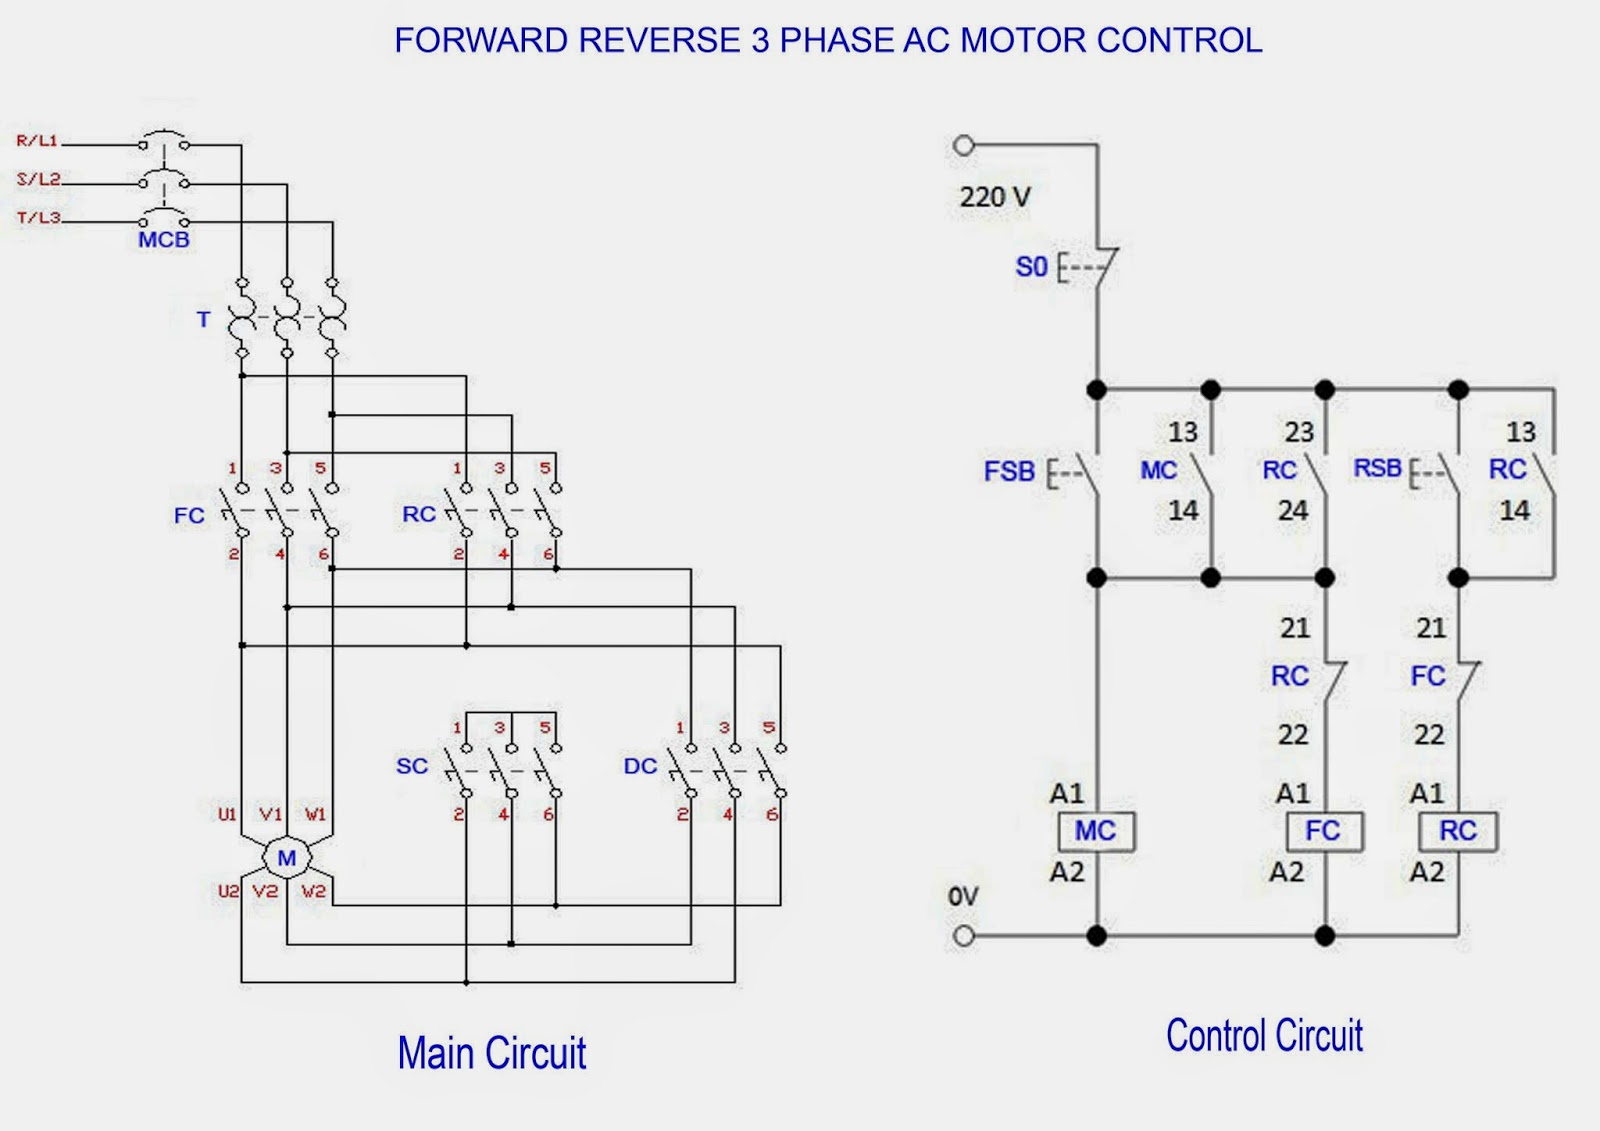 9a Motor Drum Switch Wiring Help 205264 Print as well Ge Ac Motor Wiring Diagrams furthermore 805vz4 besides US6003837 additionally Dayton 2 Hp Motor Wiring Diagram 220 Vs 110. on reversible electric motor wiring diagram